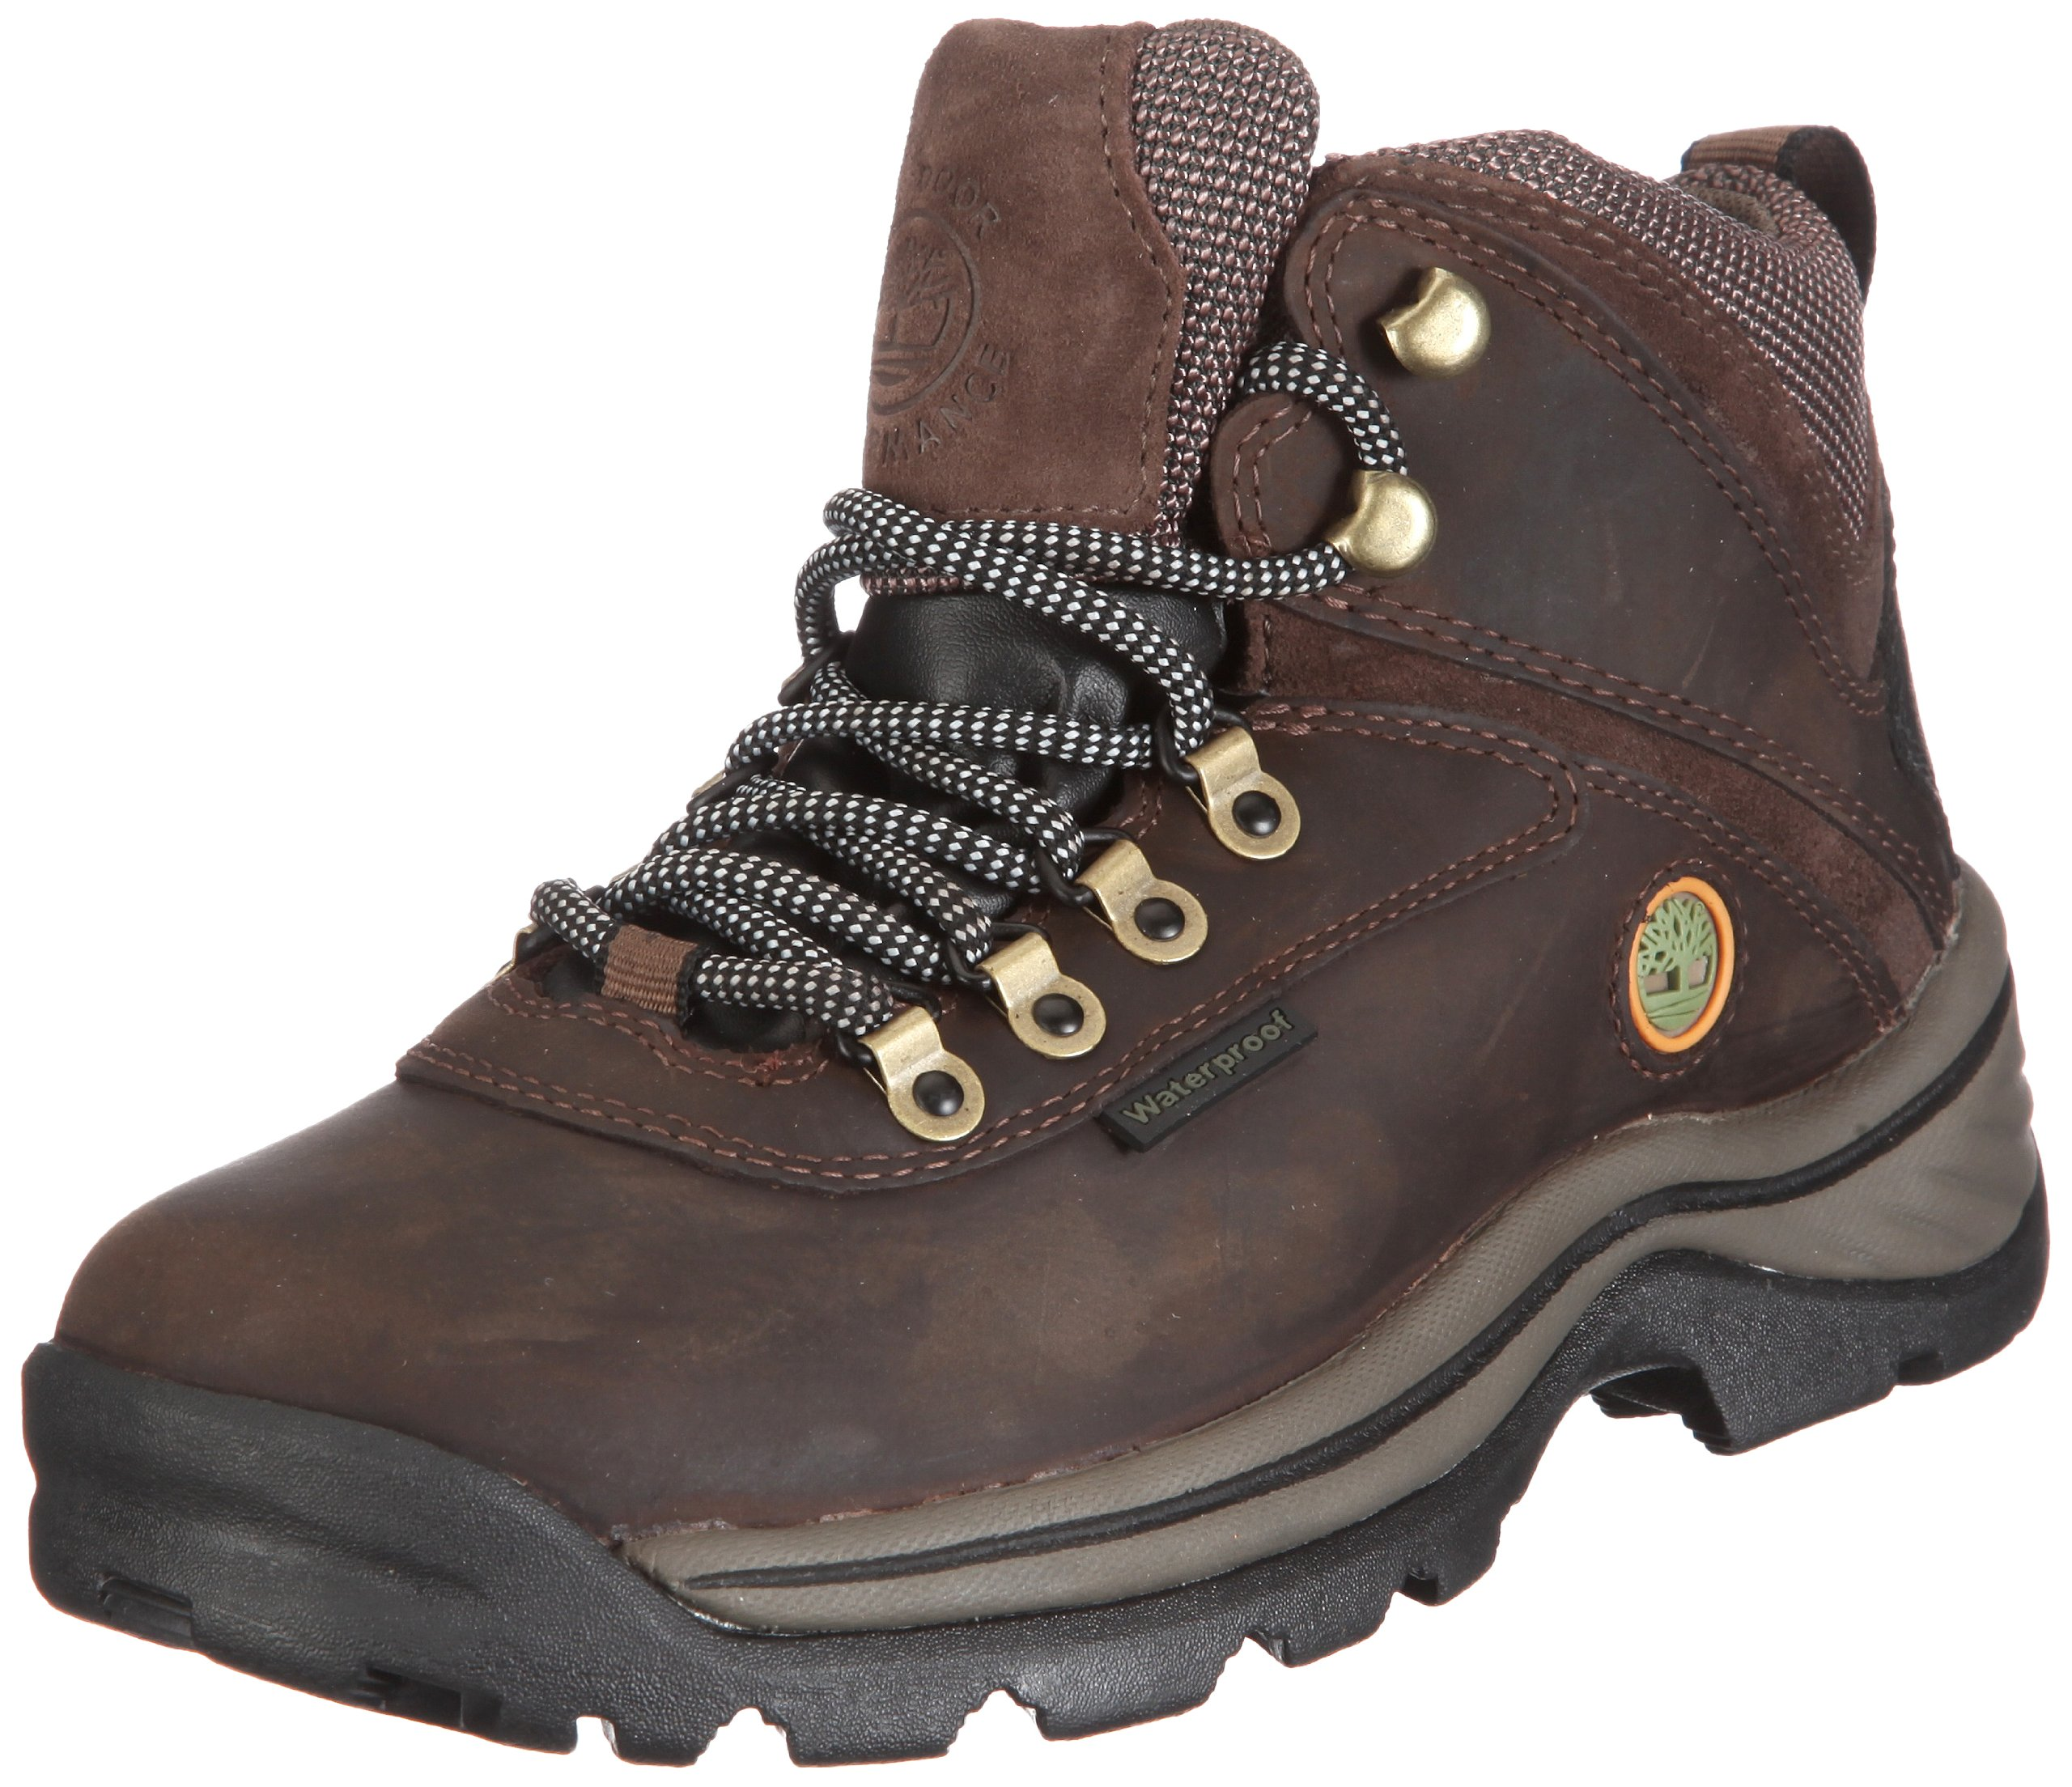 Timberland Women's White Ledge Mid Ankle Boot,Brown,9.5 W US by Timberland (Image #1)